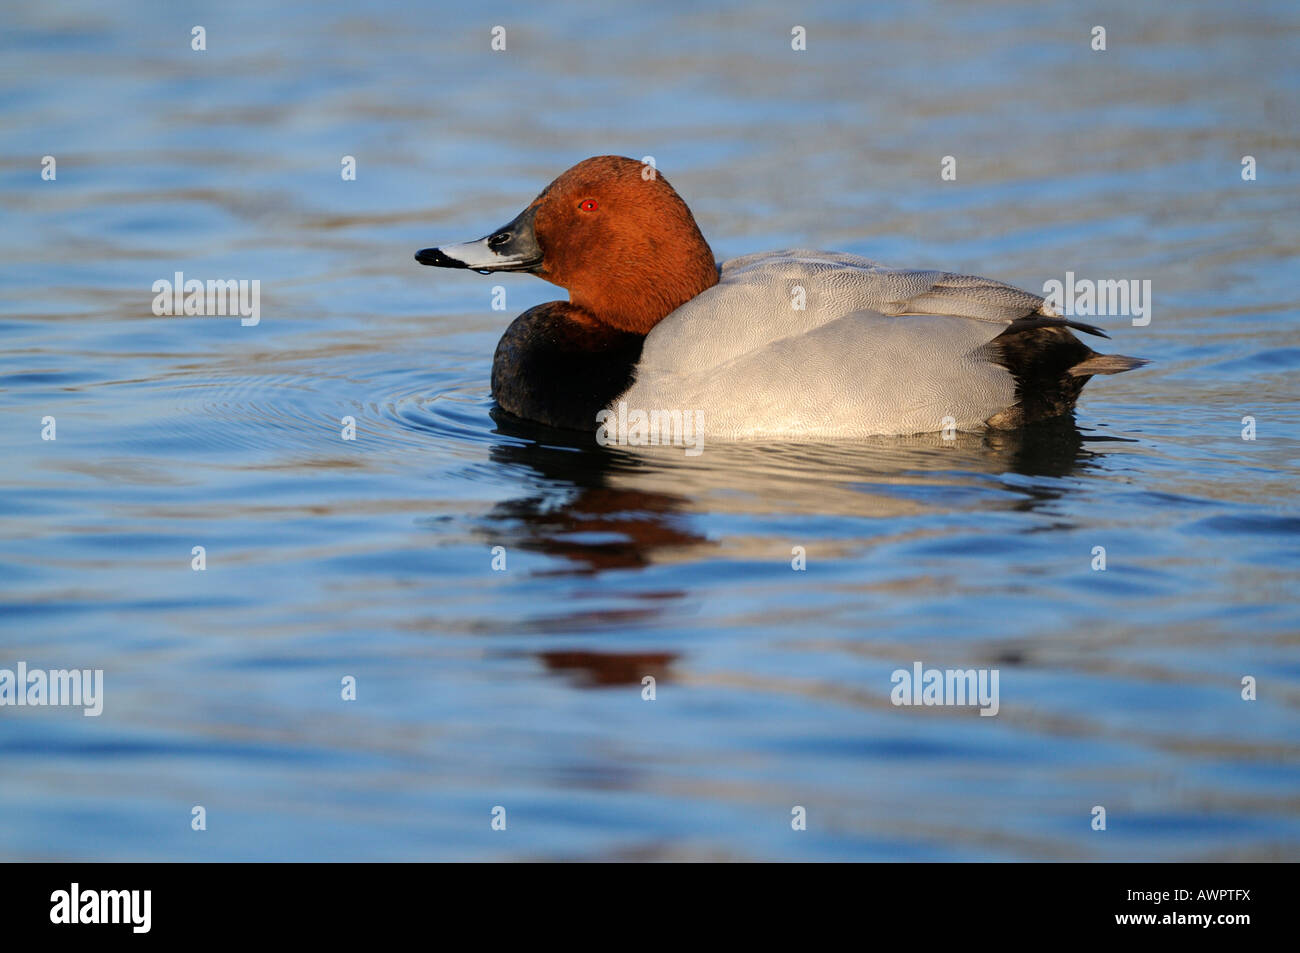 Common Pochard (Aythya ferina) basking in the evening sun, Flachsee (Flach Lake), Switzerland, Europe - Stock Image